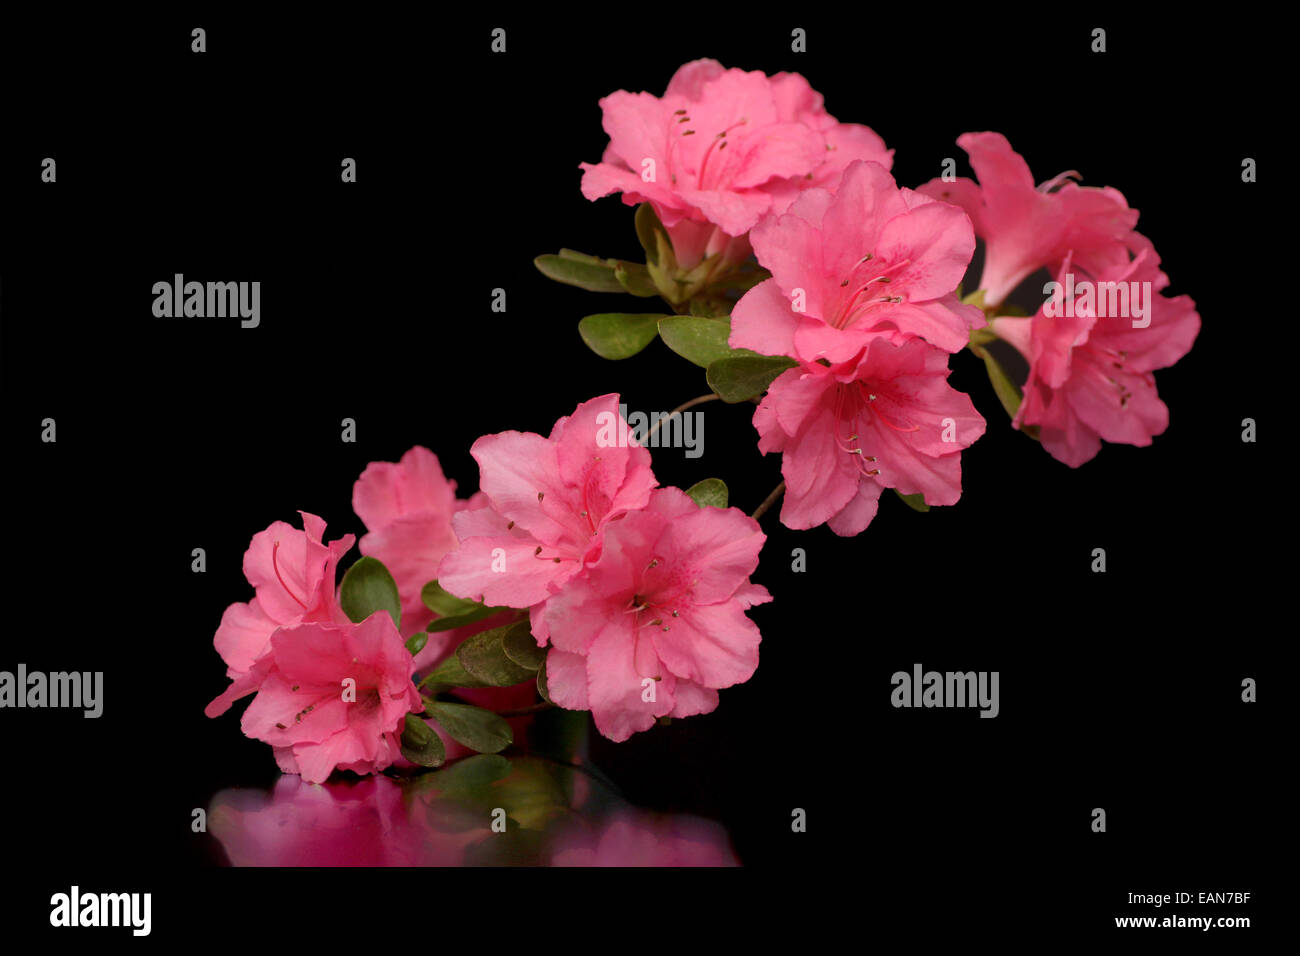 Rhododendron Pink Flower On Black Background Pink Stock Photos